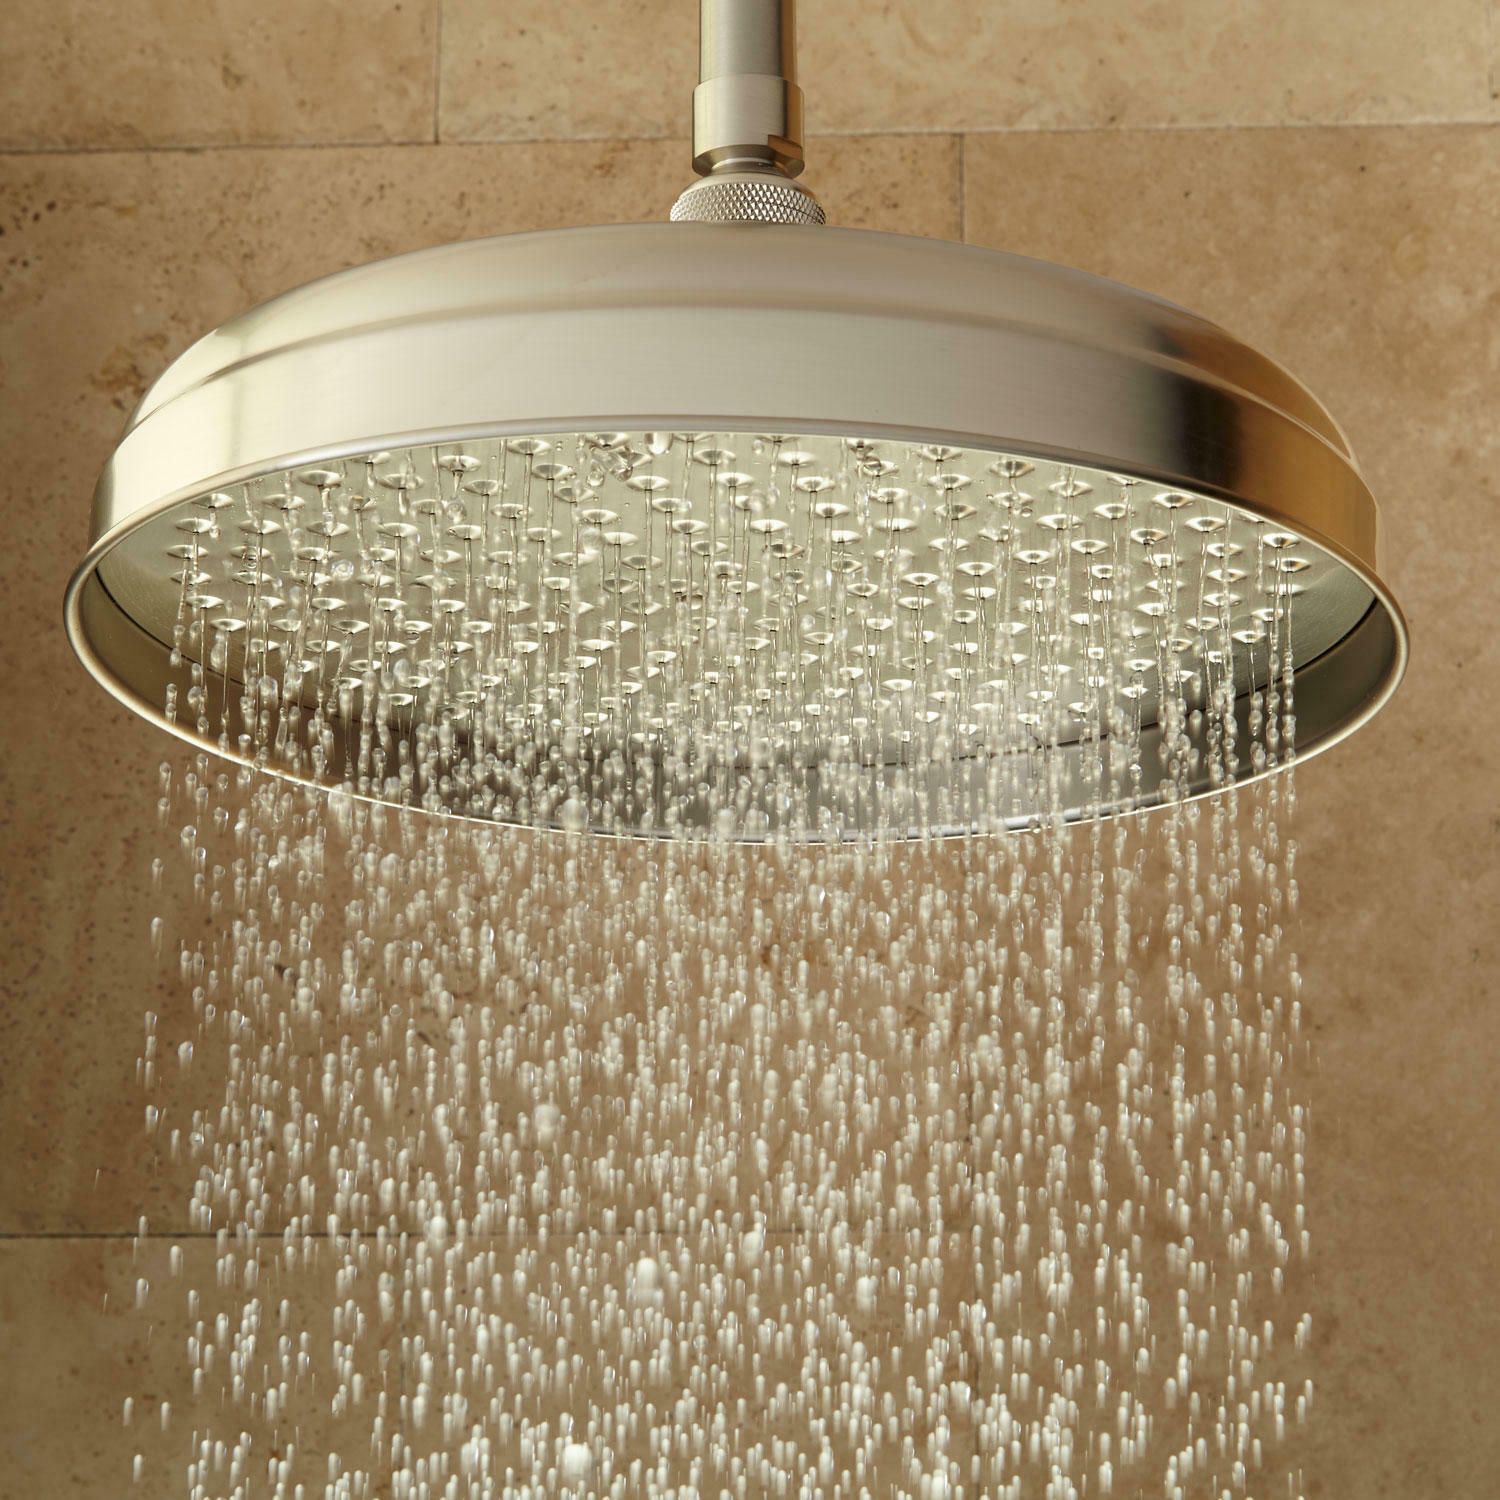 6 Lambert Rainfall Shower Head With 12 Ceiling Arm Brushed Nickel Showers Ideas Of Showers Showers Rainfall Shower Head Rainfall Shower Shower Heads